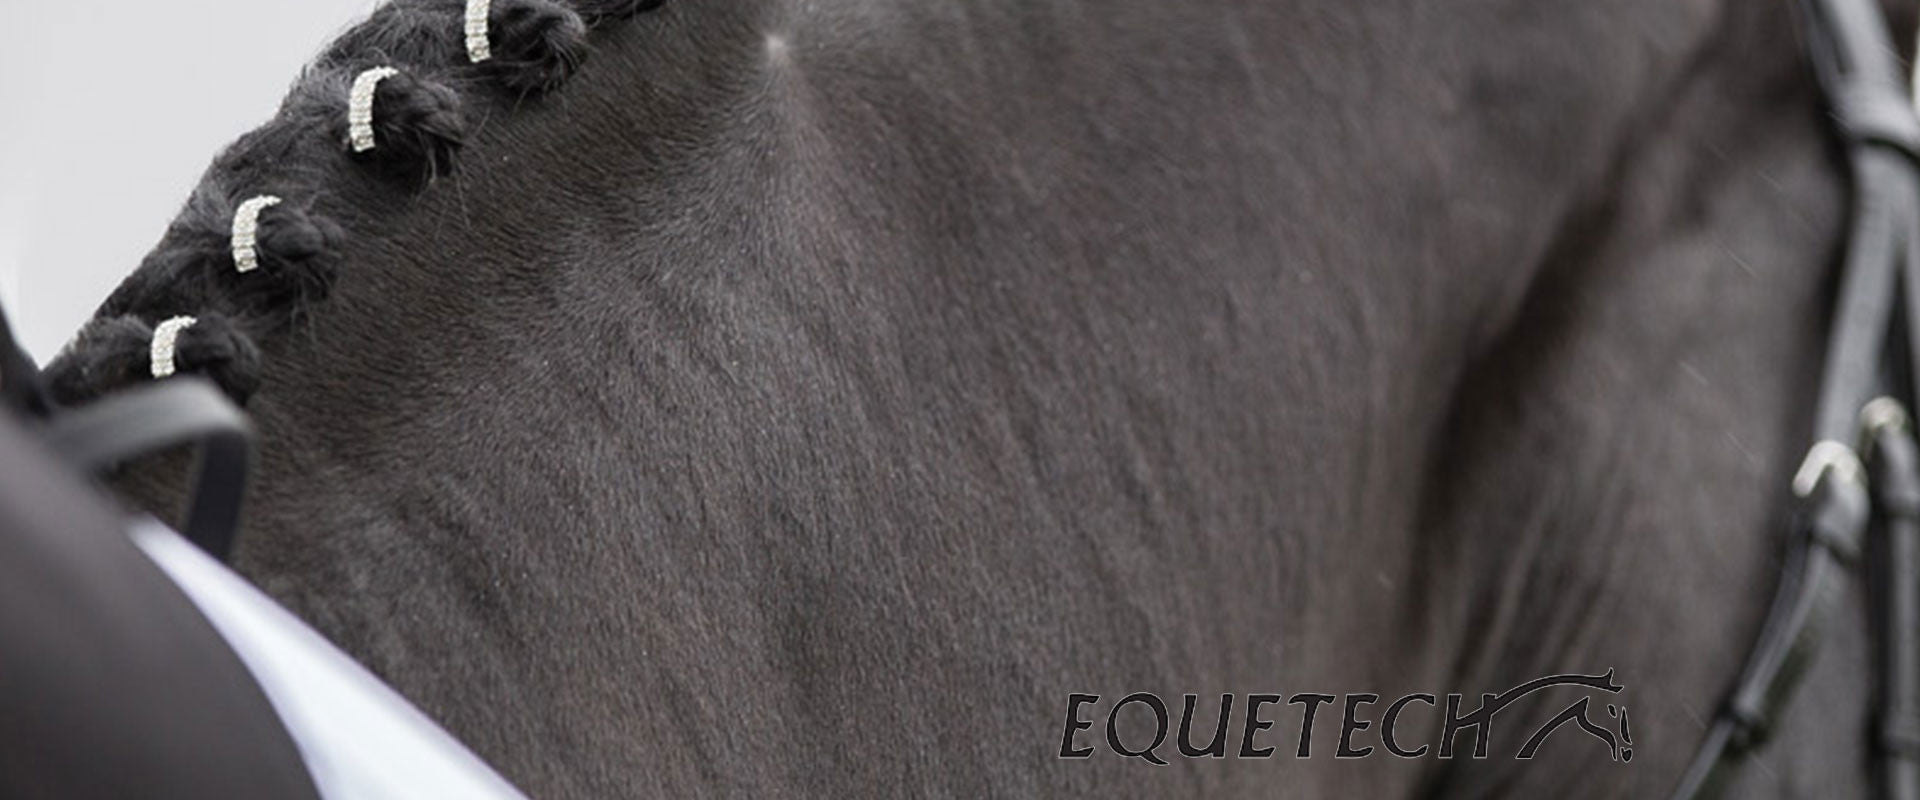 Equetech Horse & Rider